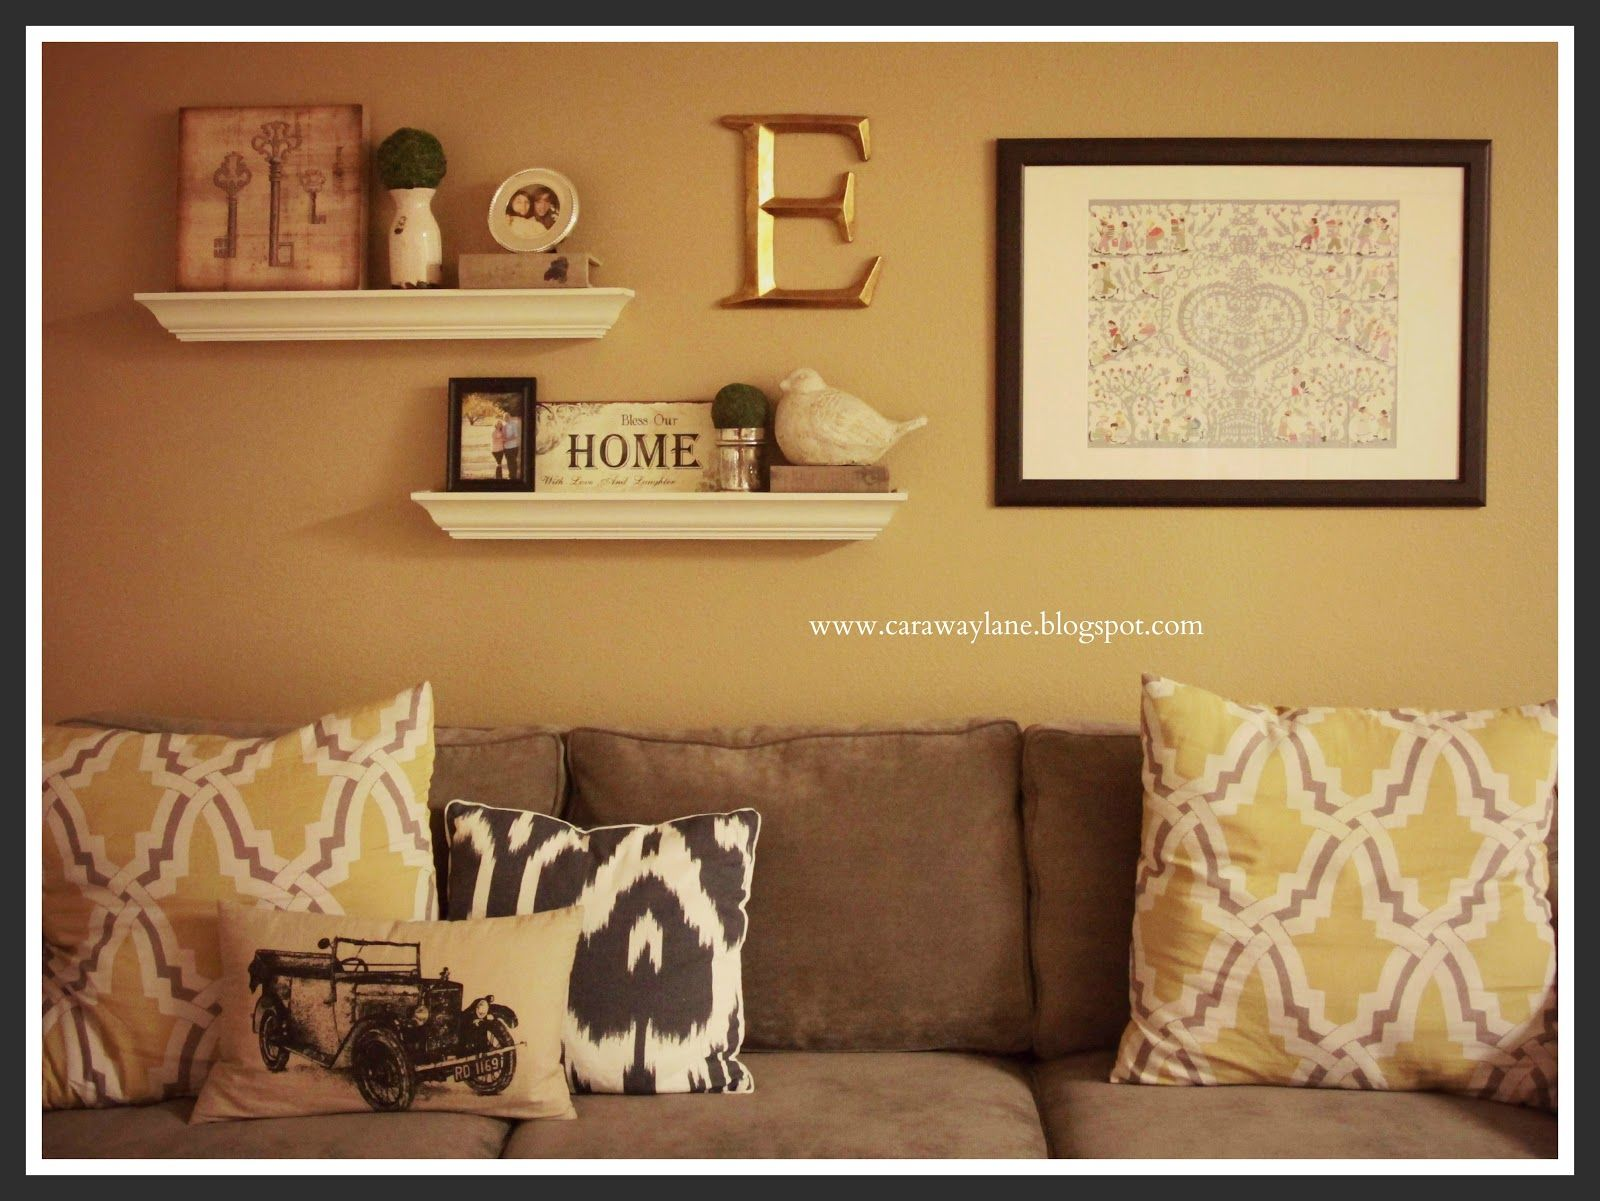 Decorate over a sofa above the couch wall decor future for Room decor wall